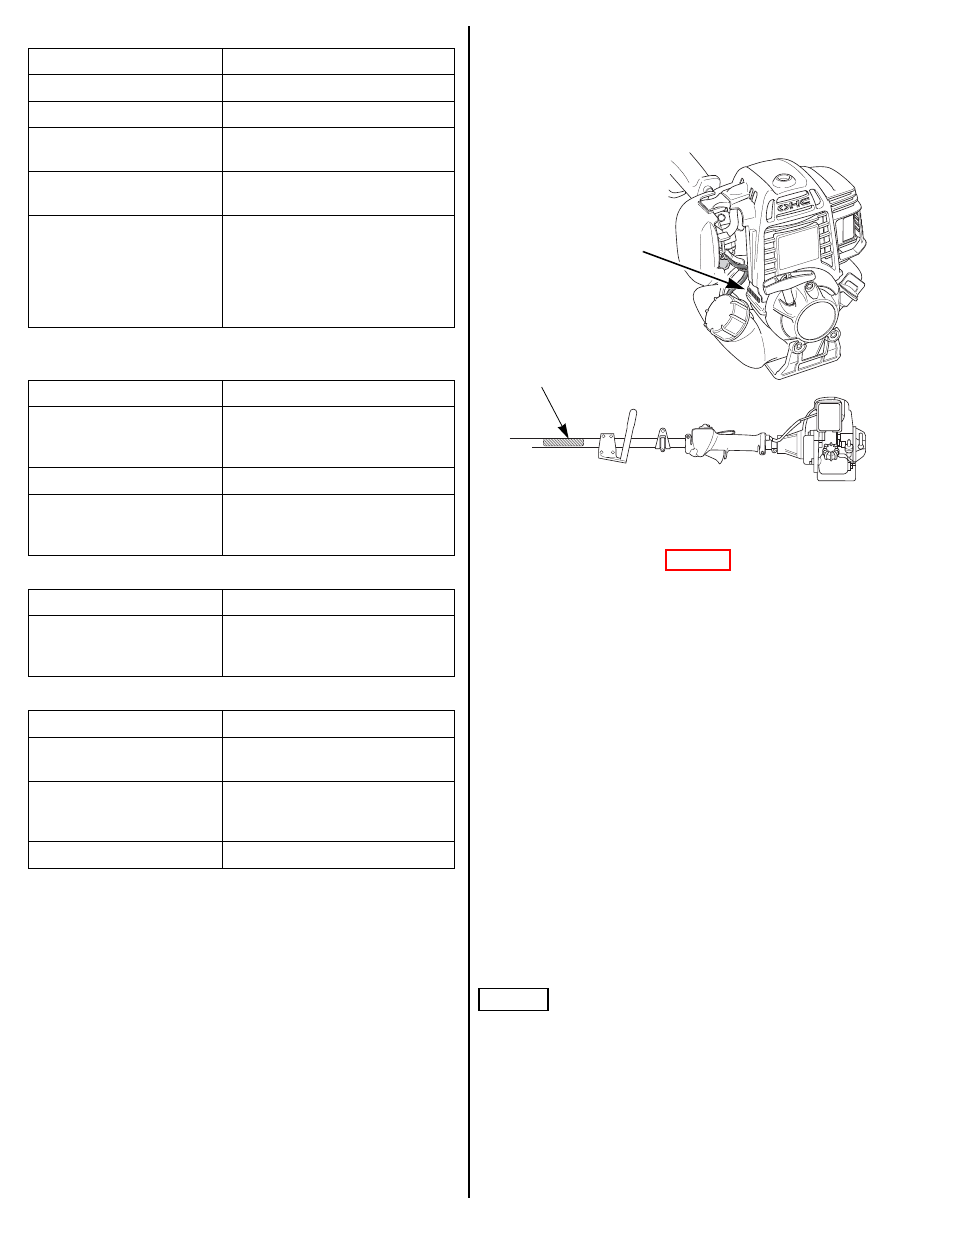 Technical information, Serial number locations | HONDA